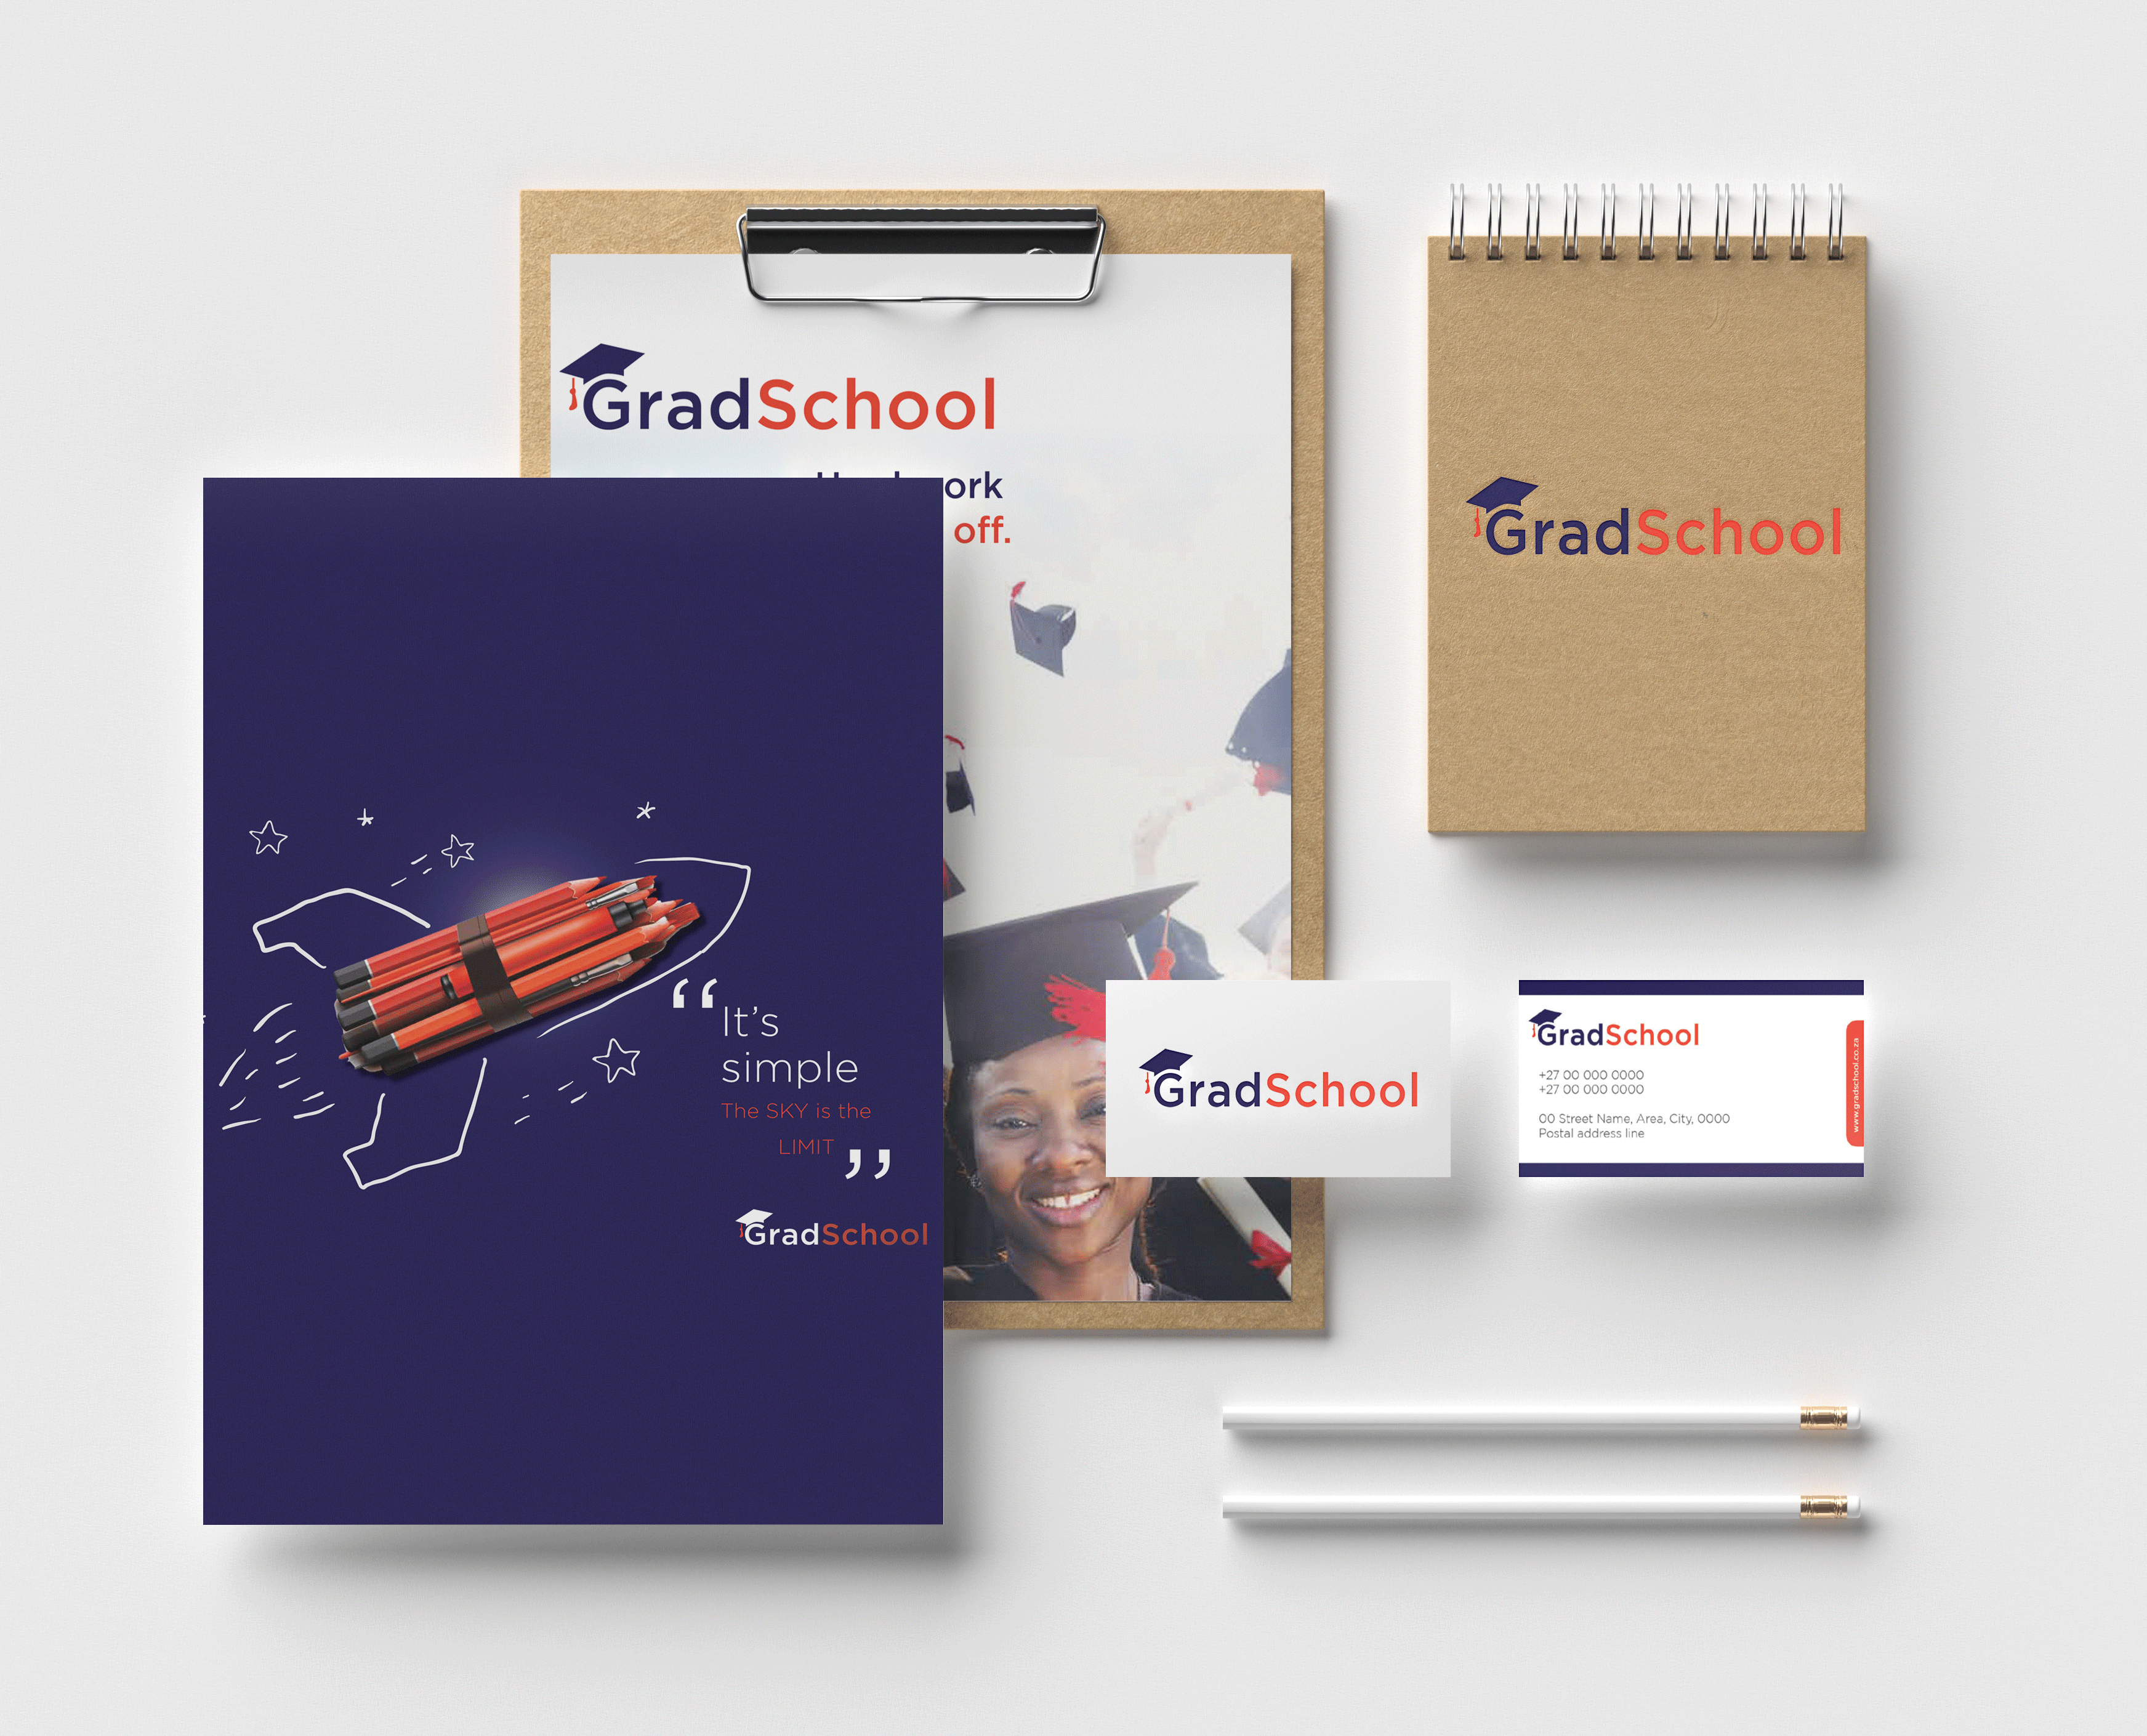 gradschool mock up